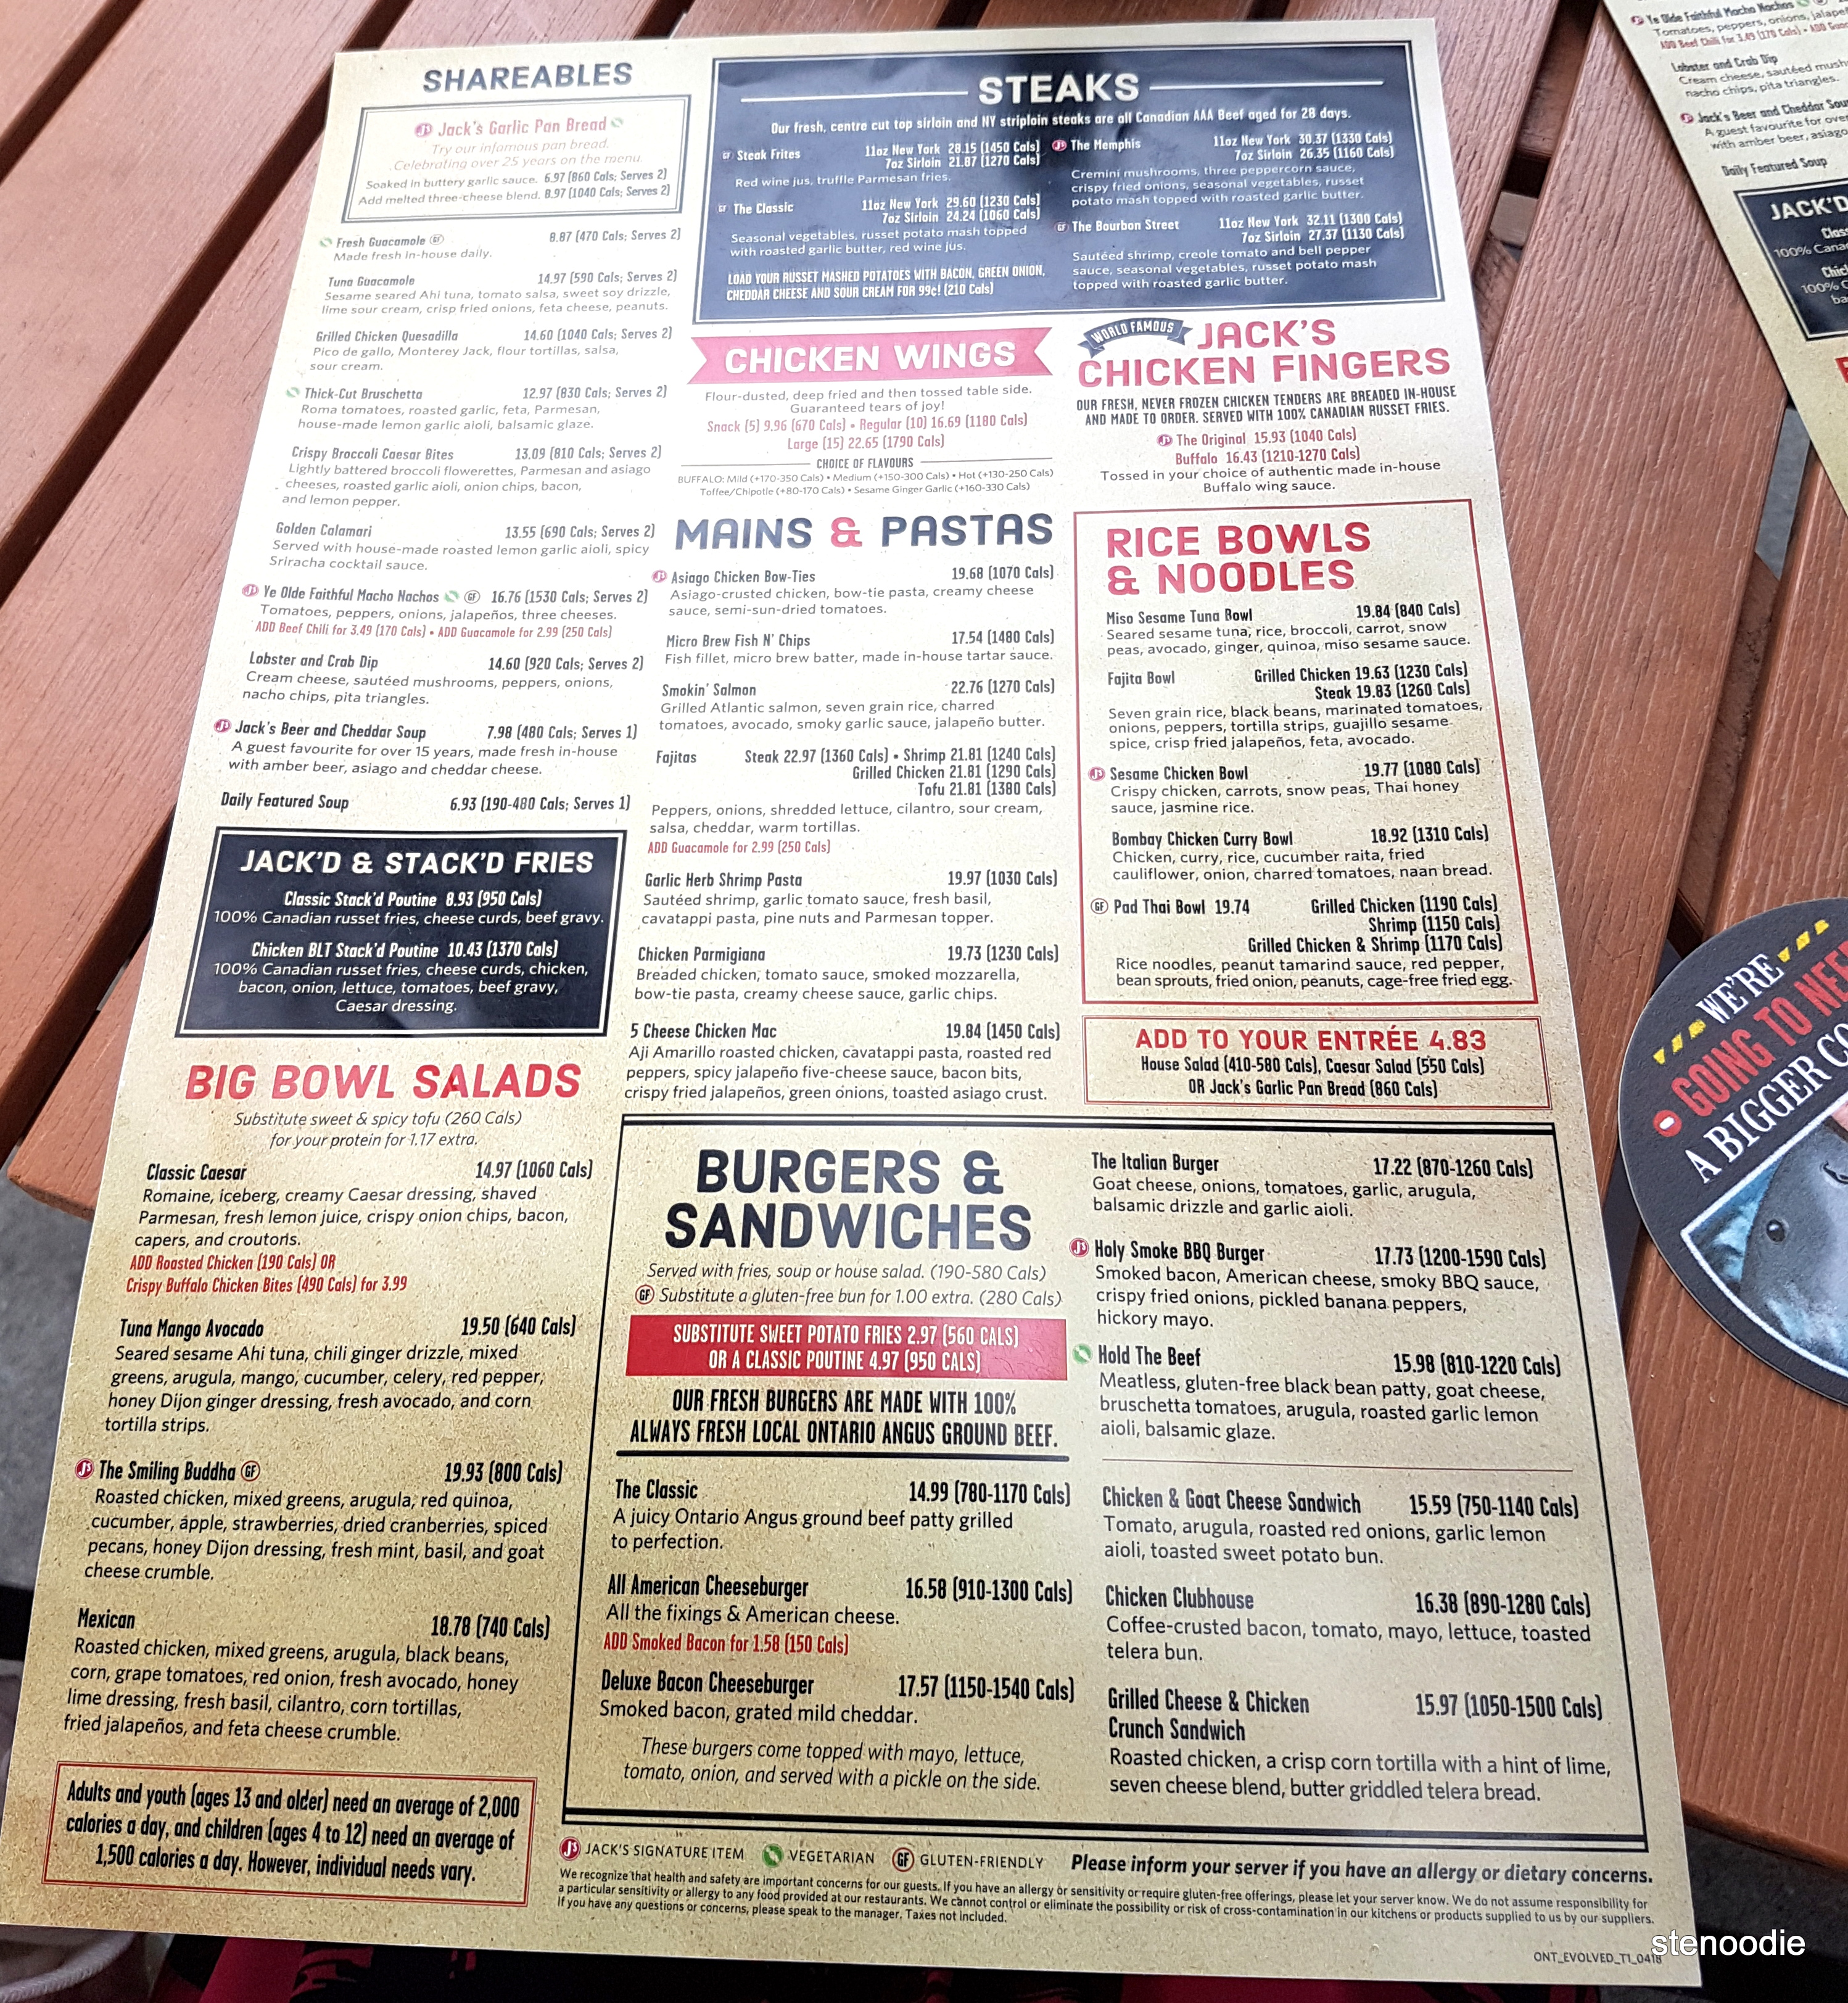 Jack Astor's menu and prices